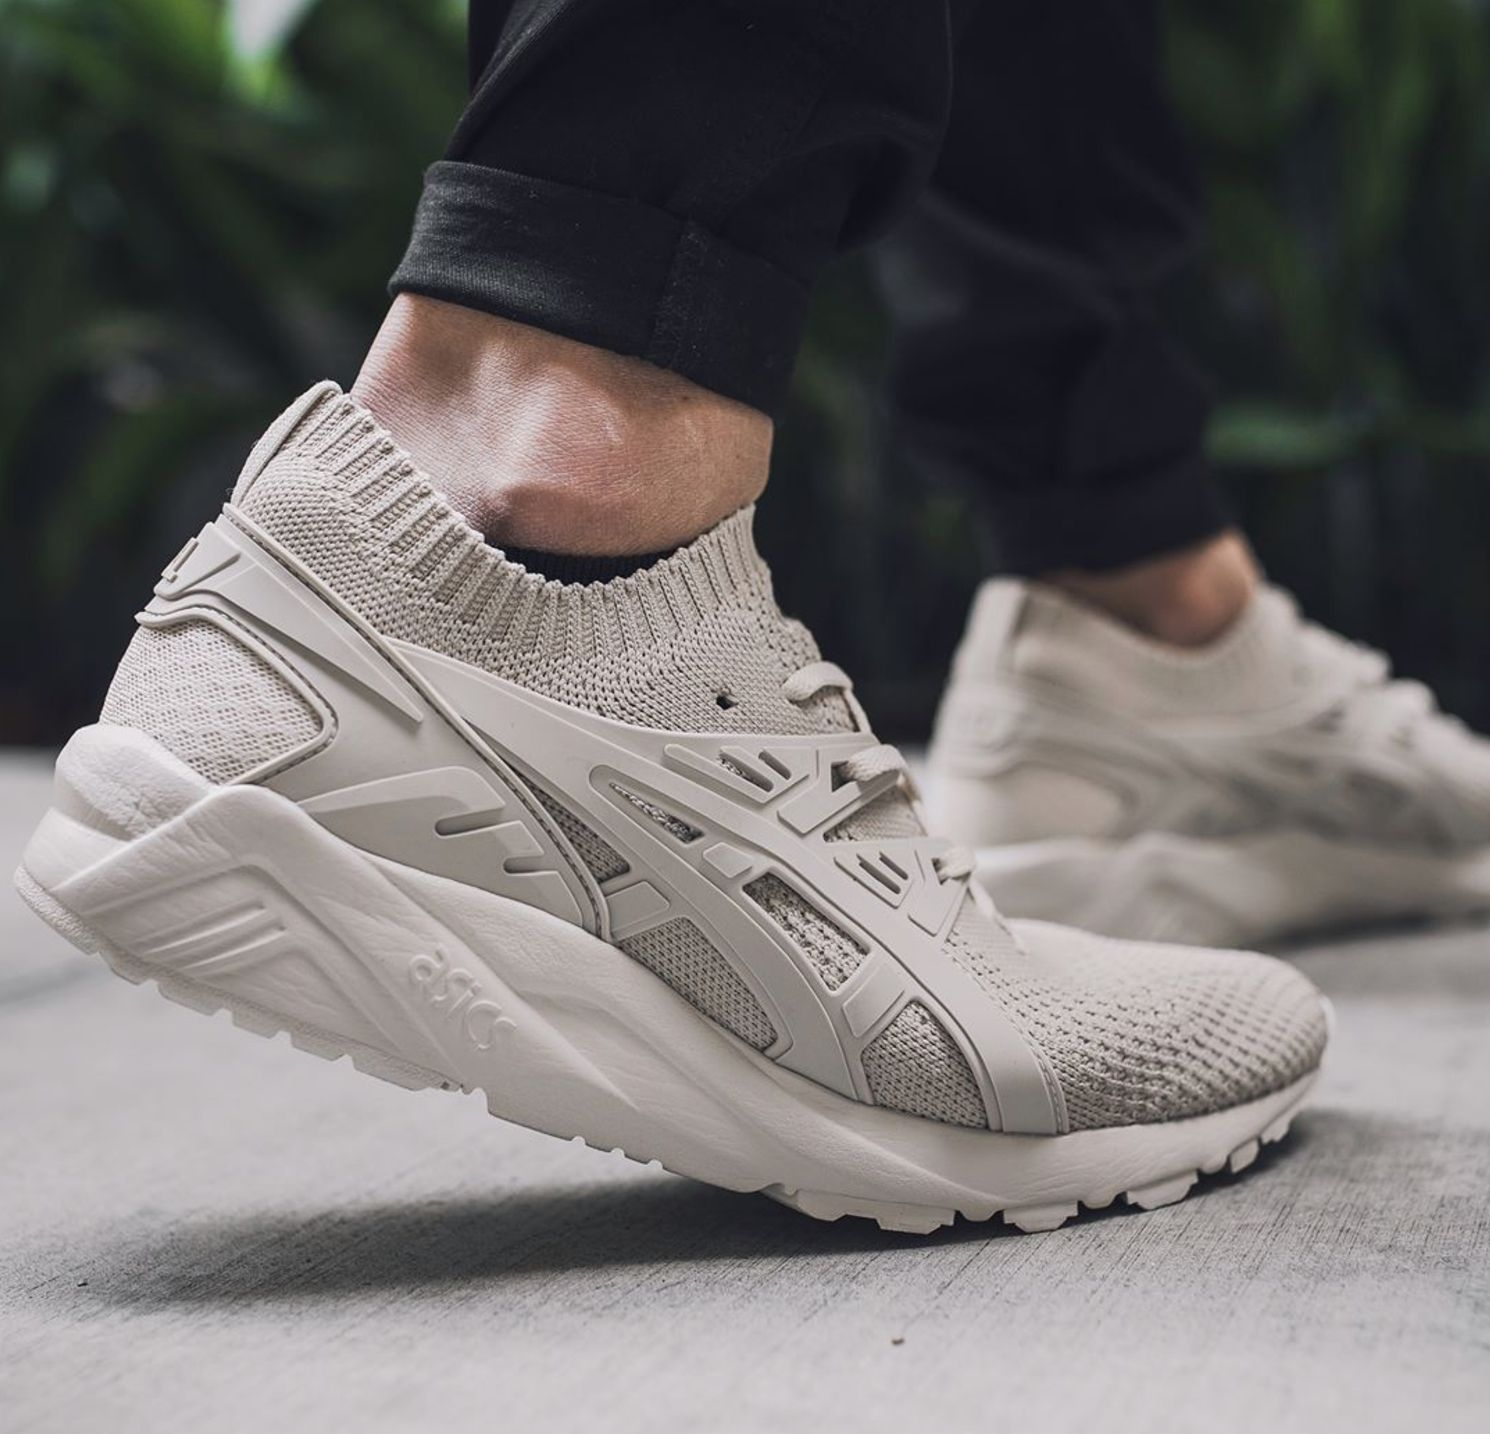 28722bda5d7 asics gel kayano trainer knit low 2